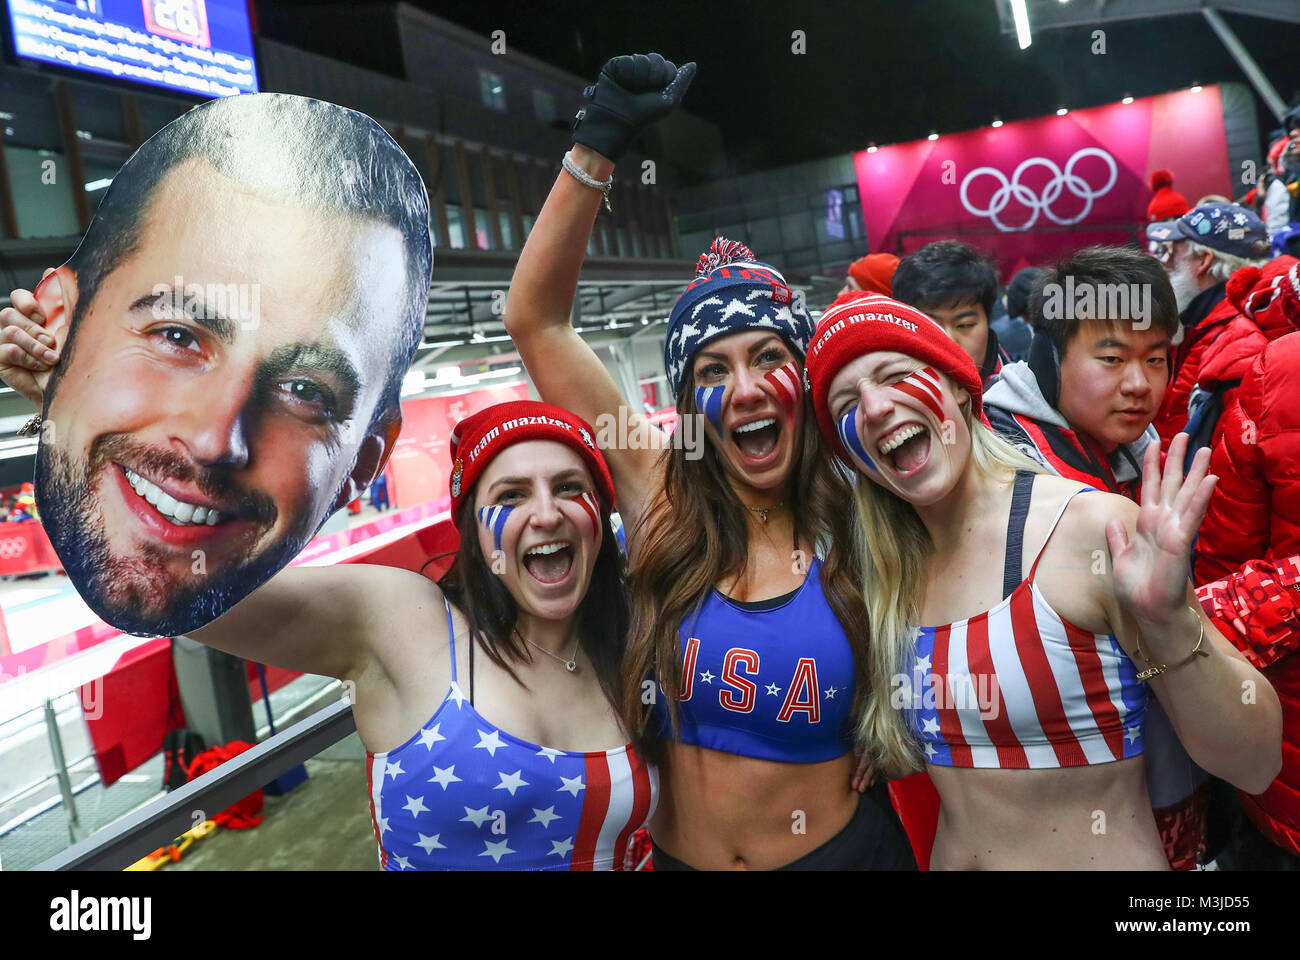 Pyeongchang, South Korea. 11th February, 2018. Fans of the American luge athelete Mazdzer cheering during the men's - Stock Image